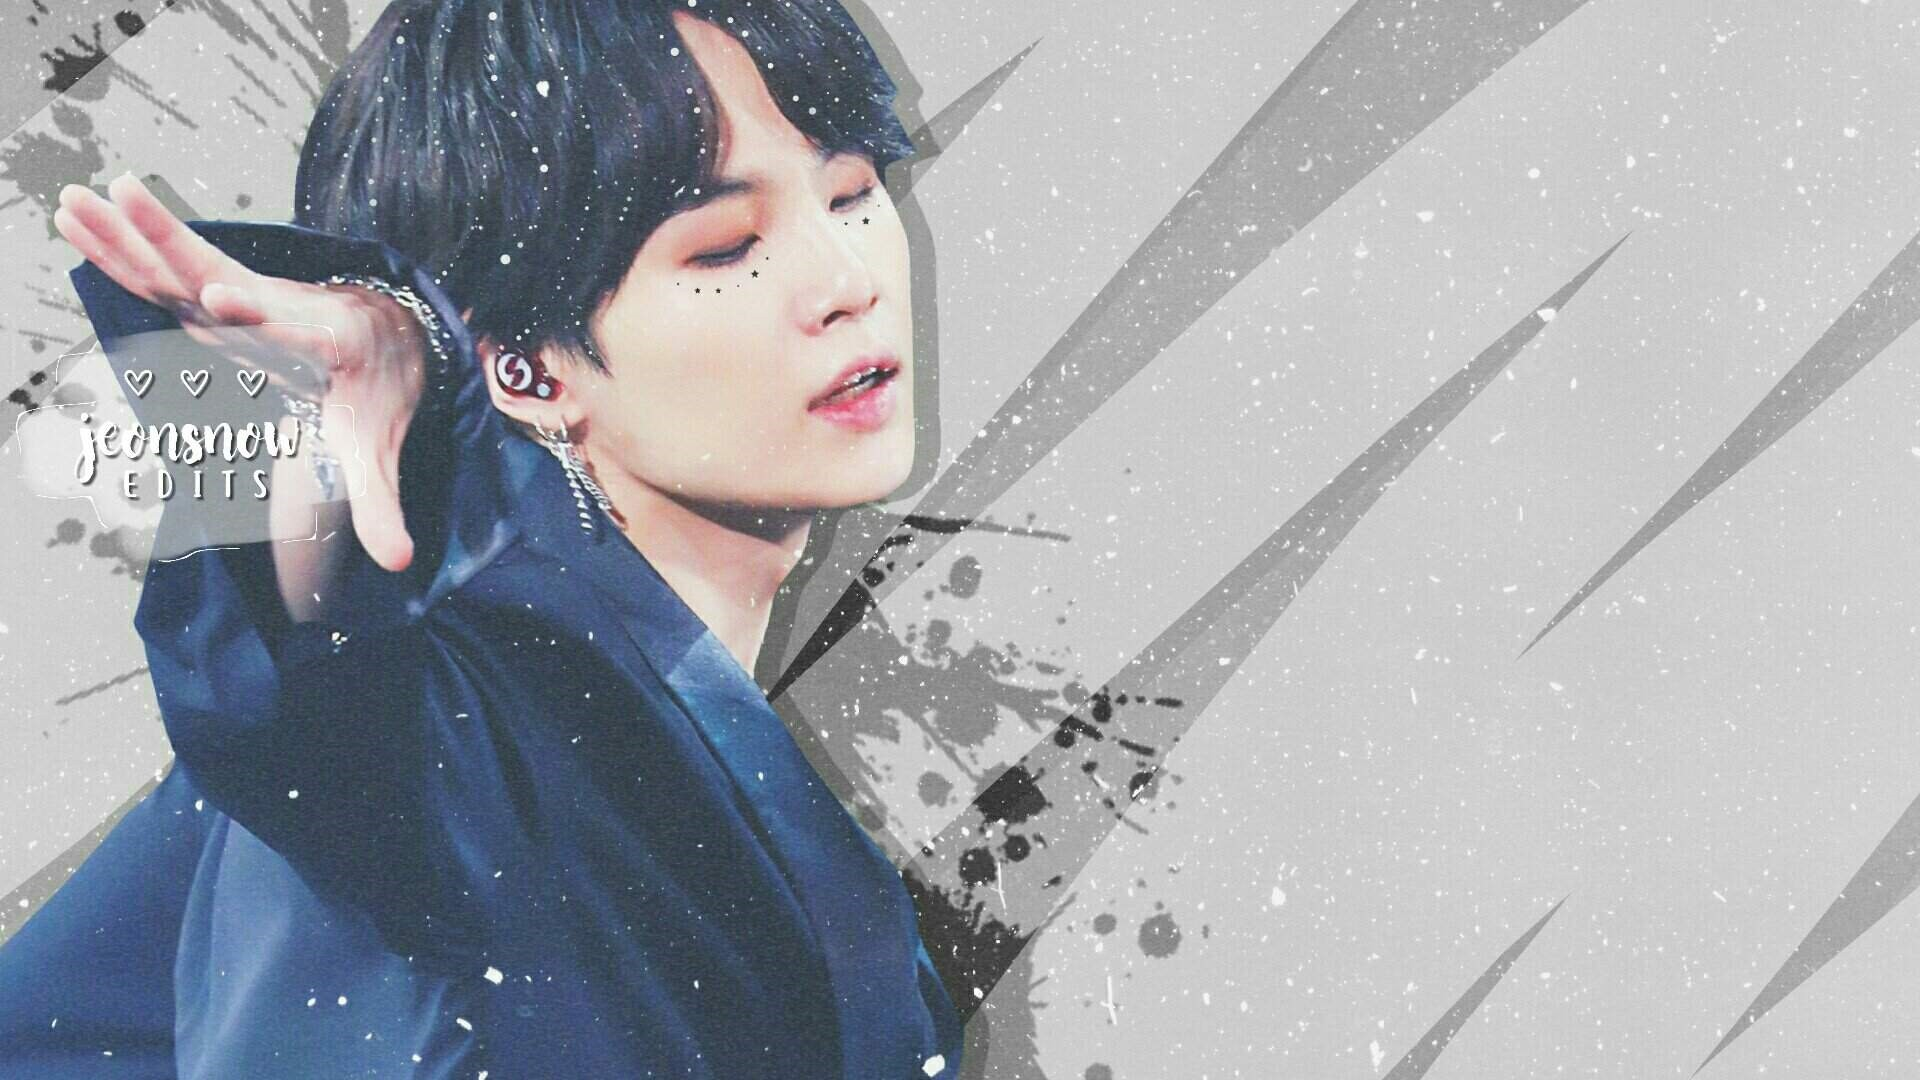 Aesthetic Bts Free Wallpaper and Background